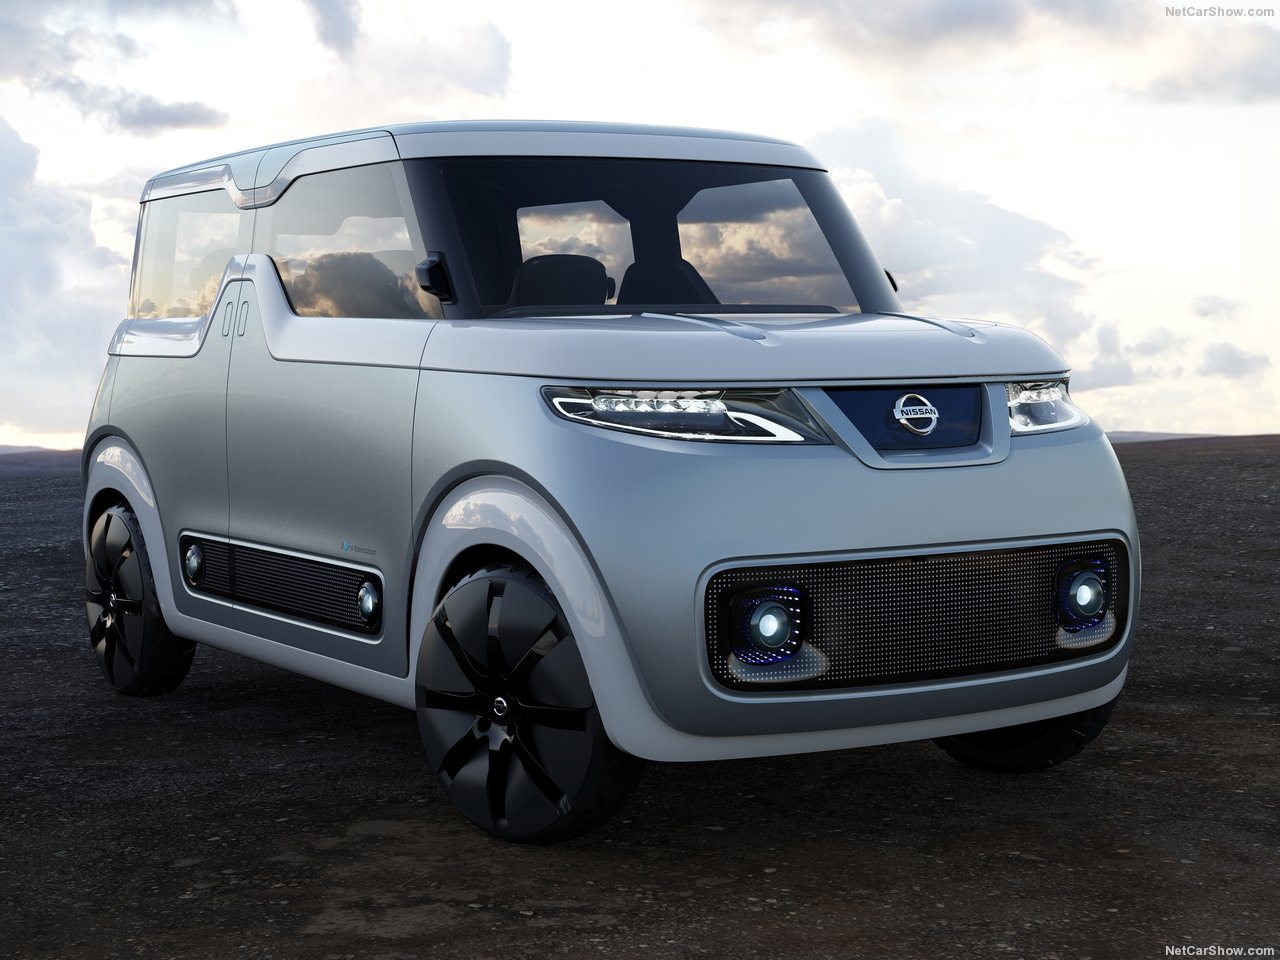 Nissan Teatro for Dayz Concept photo 153400